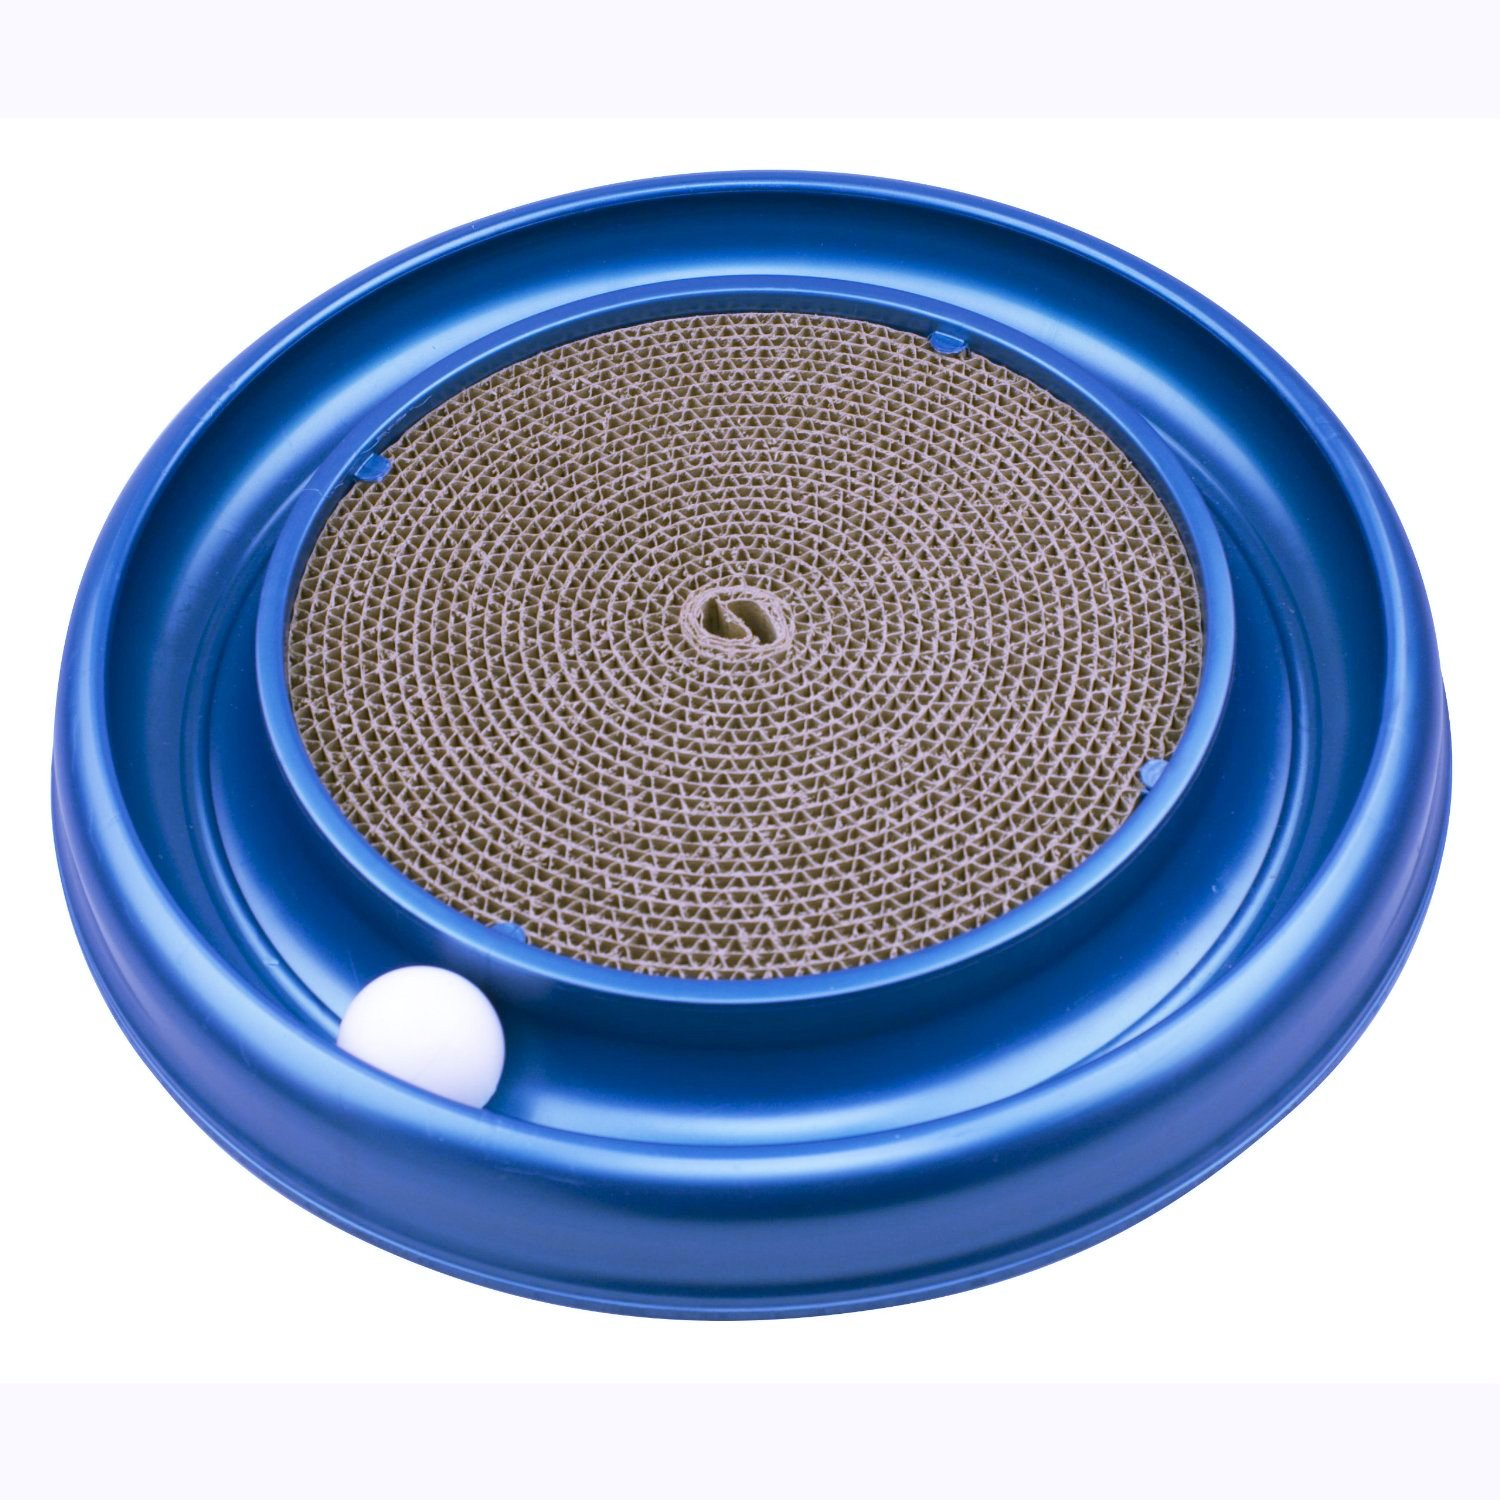 SUMCOO Eco-Friendly Cat Toys, Catnip Tunnel Track Pet Toys And Cat Cardboard Scratcher Toys